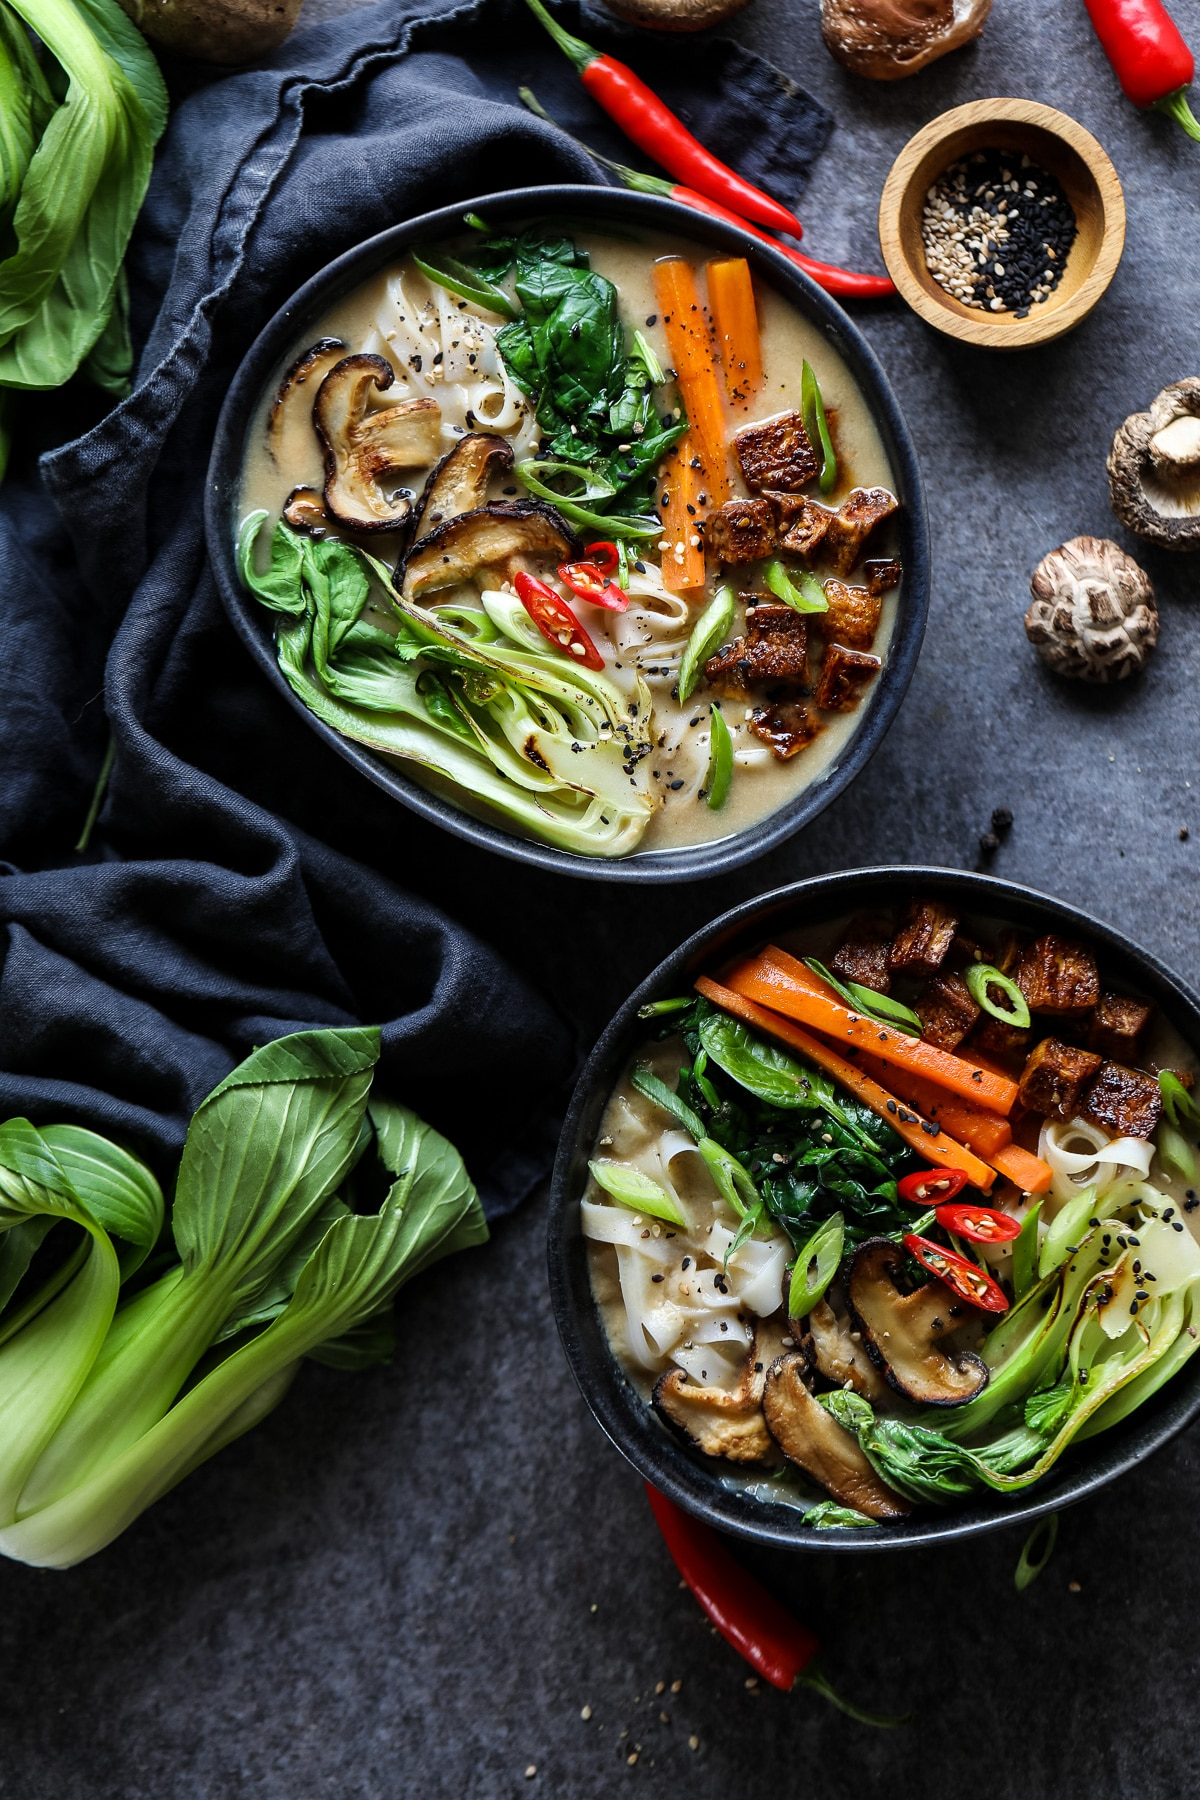 Two Vegan Ramen Bowls Surrounded by Ingredients.